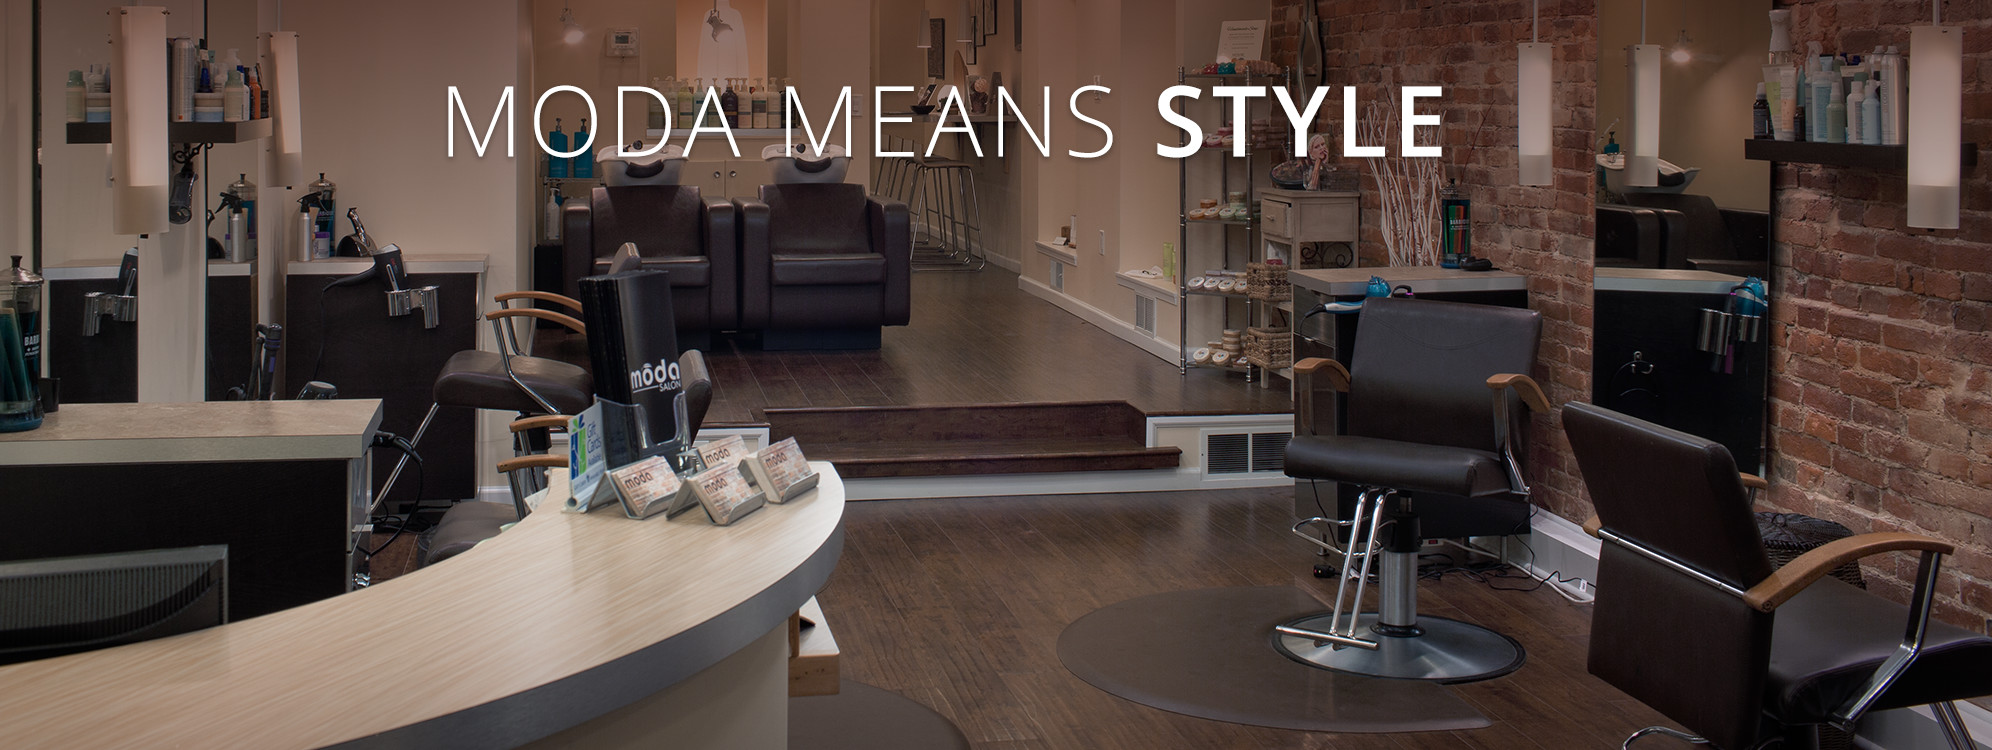 Moda Salon | 717.766.1115 | 56 W. Main Street Mechanicsburg, PA 17055 | Tues 10a–8p | Wed 10a–8p | Thurs 9a–8p | Fri 10a–8p | Sat 9a–3p | Closed Sun & Mon